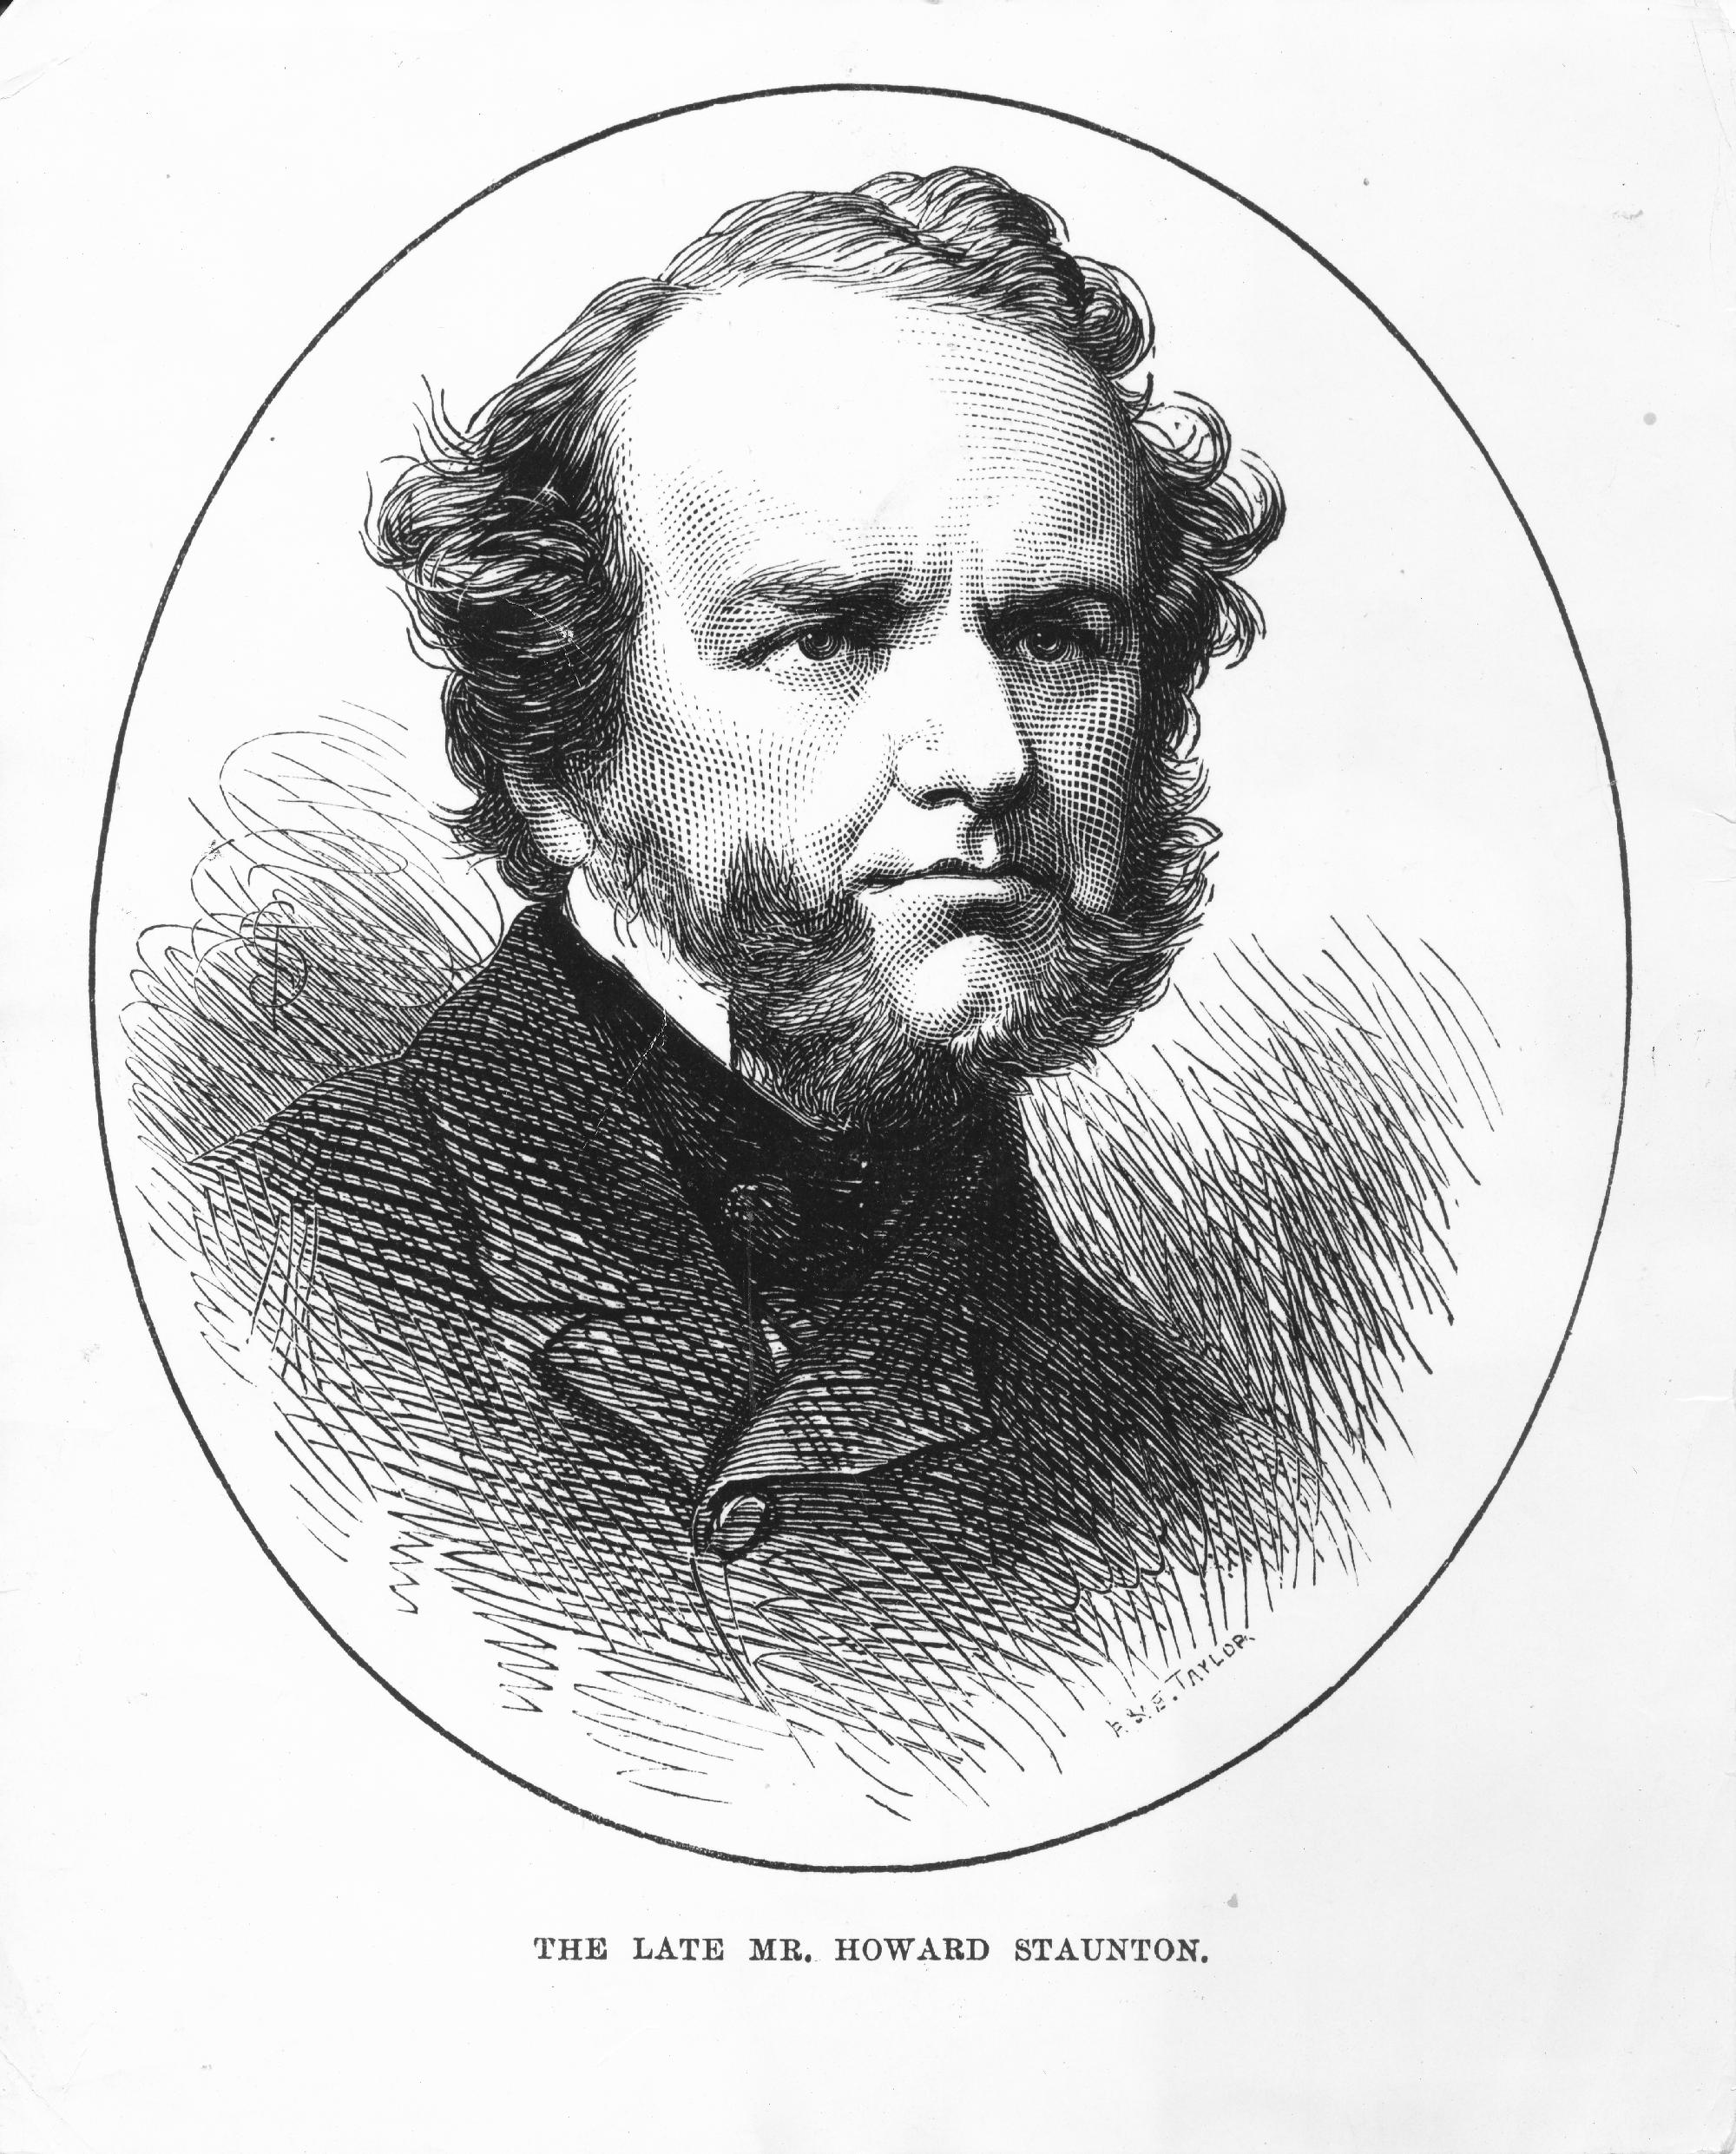 Howard Staunton, engraving by PME Taylor